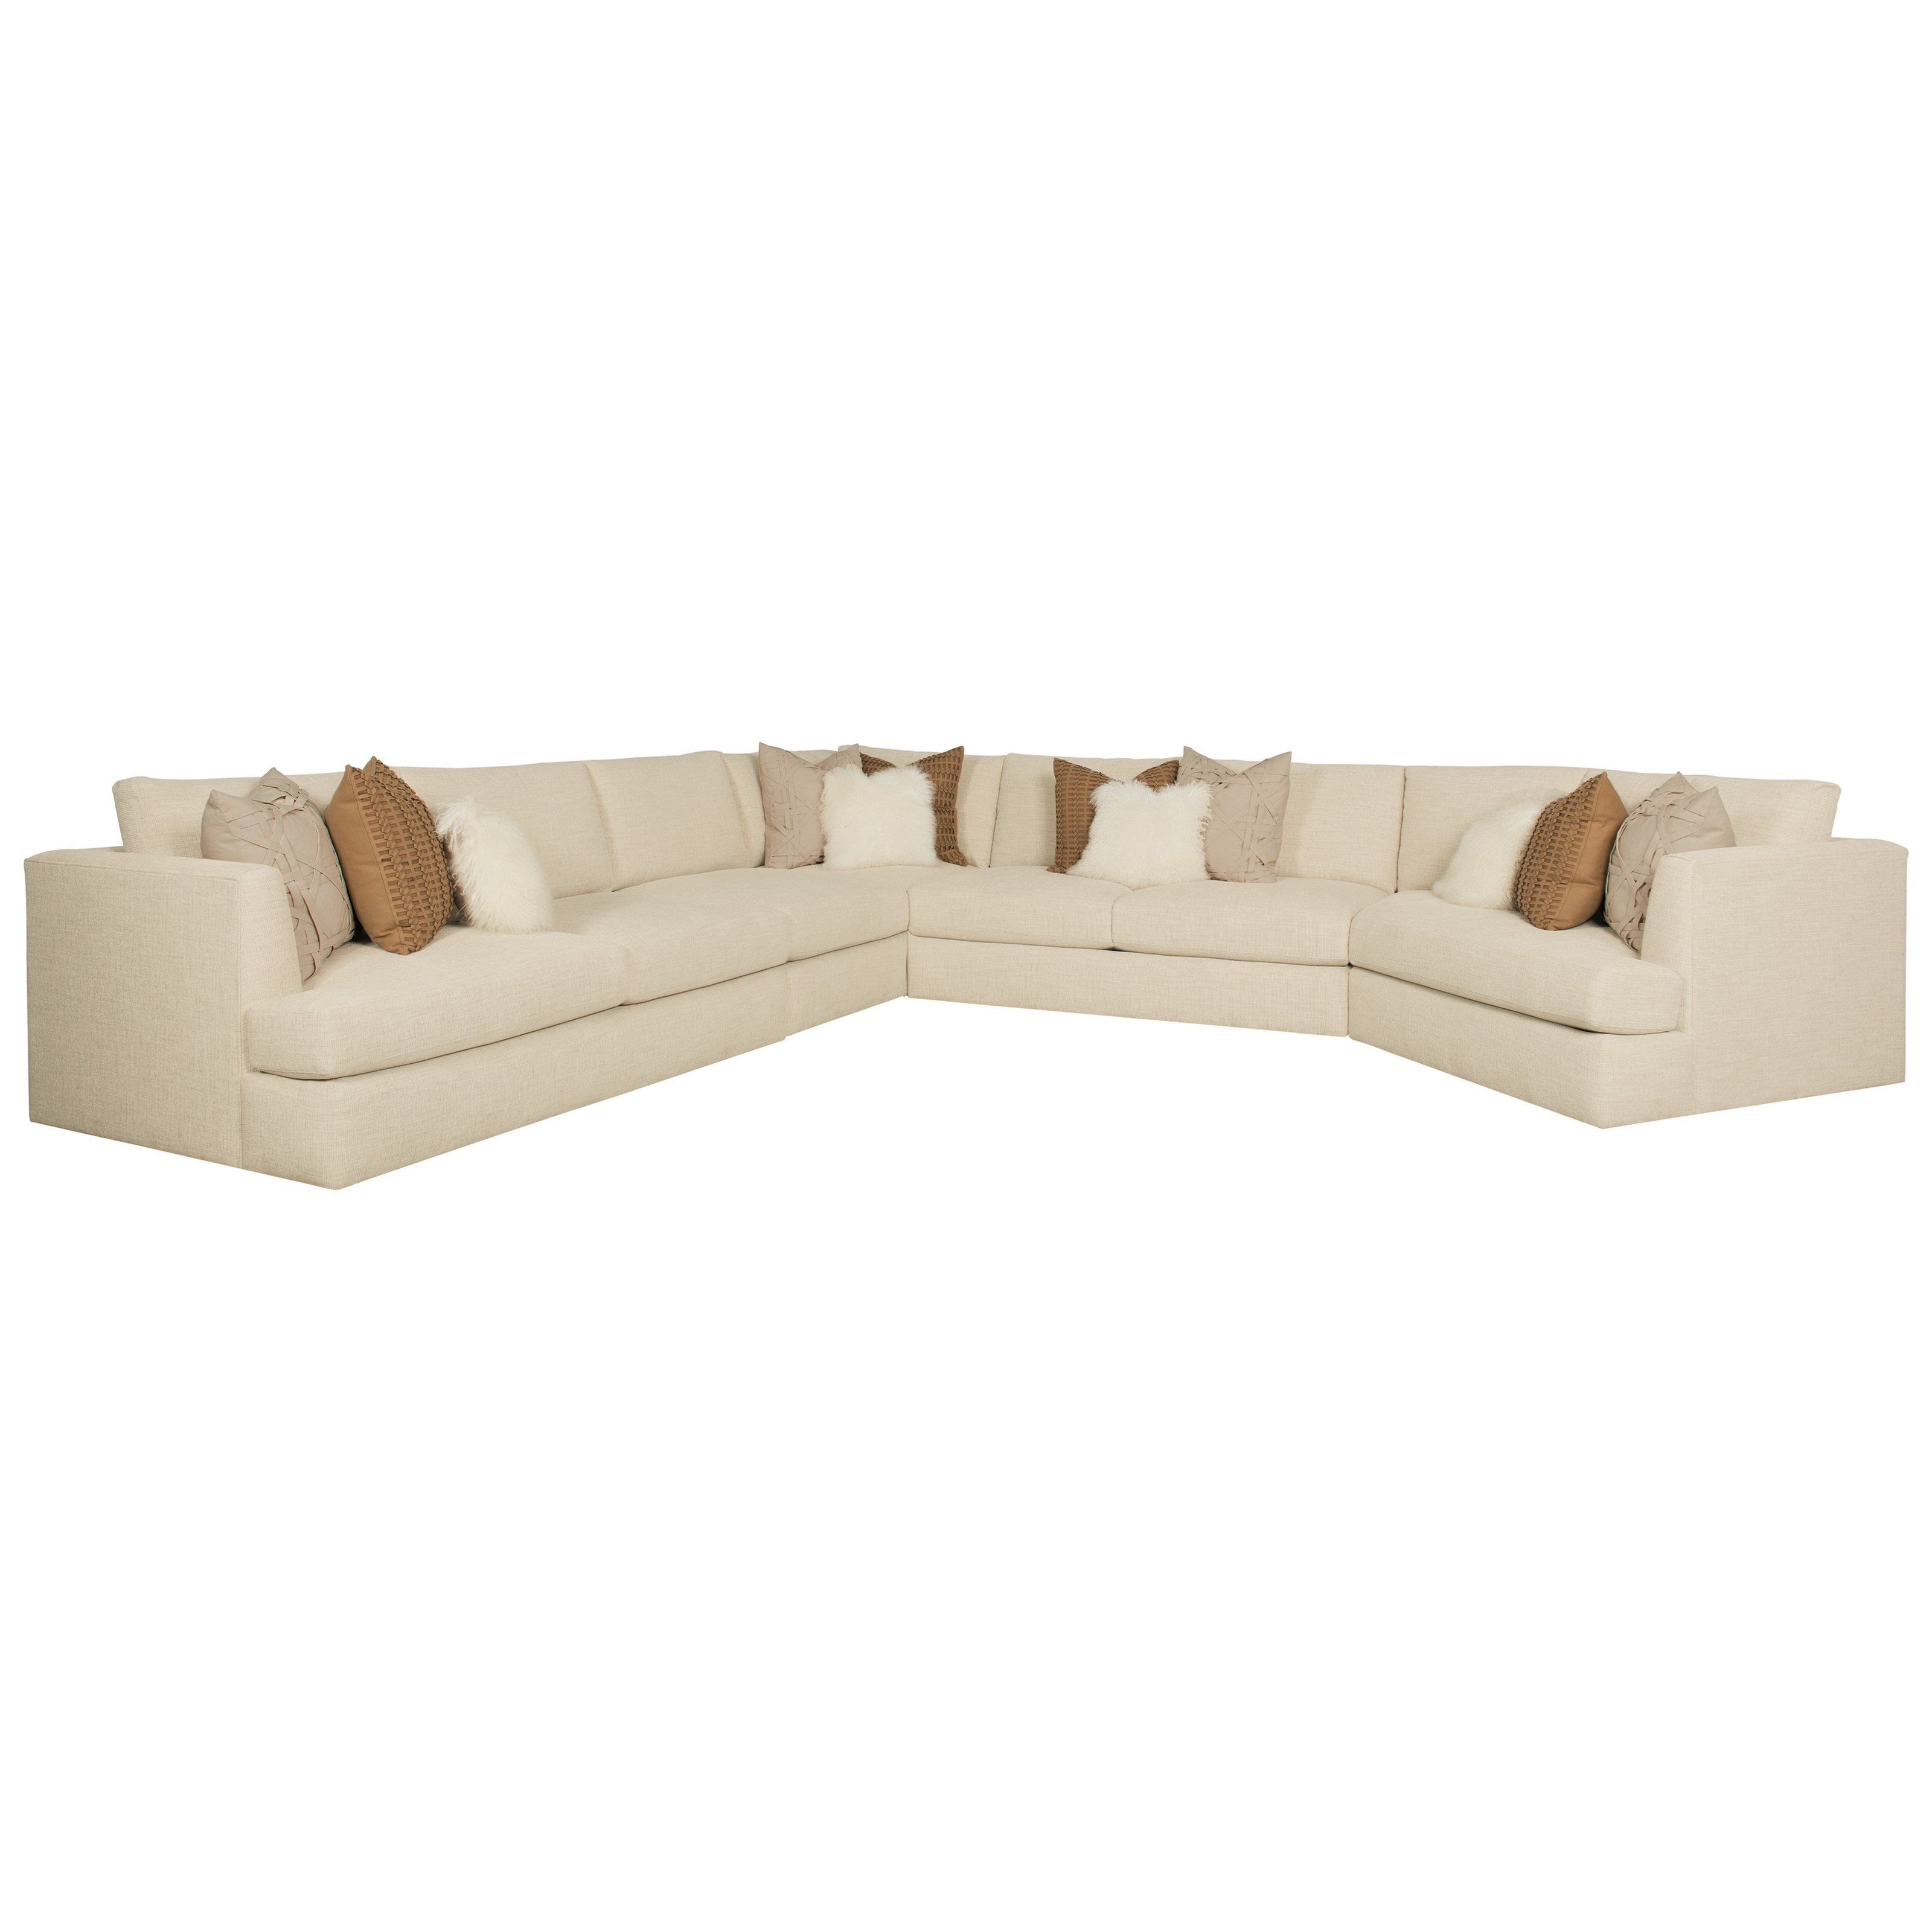 Bernhardt Sydney Seven Seat Sectional Sofa   Adcock Furniture   Sectional  Sofas